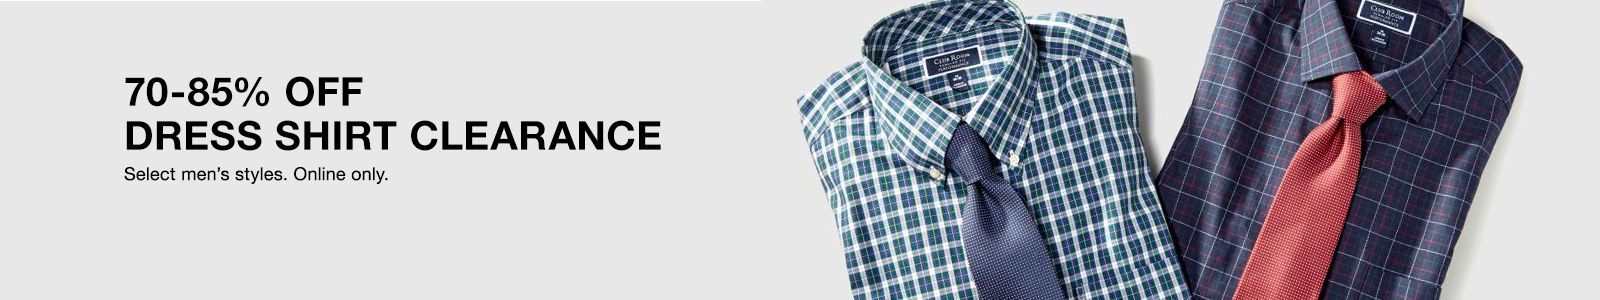 70-85% Off Dress Shirt Clearance, Select men's styles, Online only